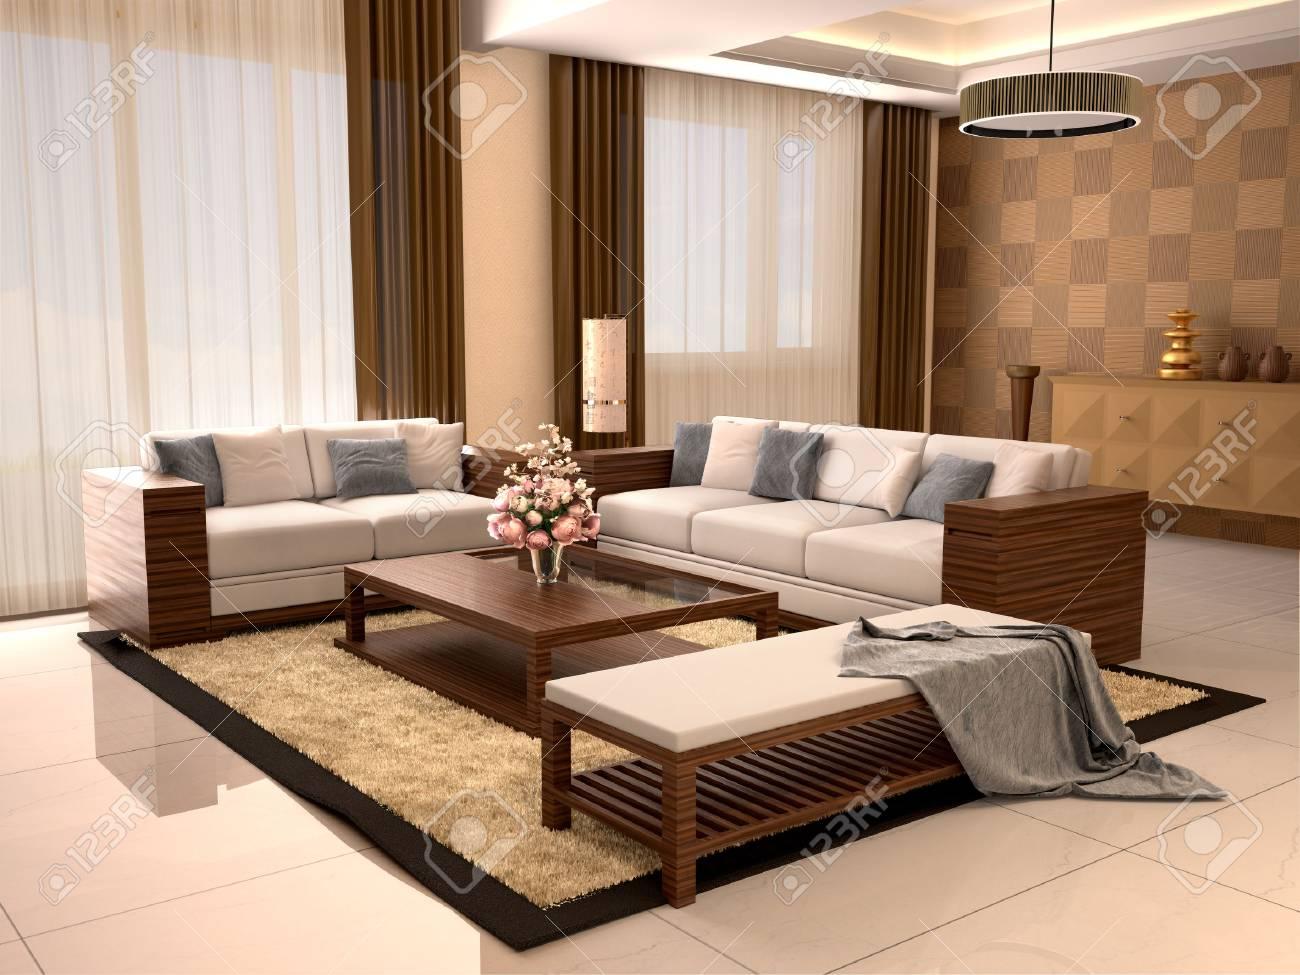 Modern Design Living Room Warm Colors 3d Illustration Stock Photo Picture And Royalty Free Image Image 62275455